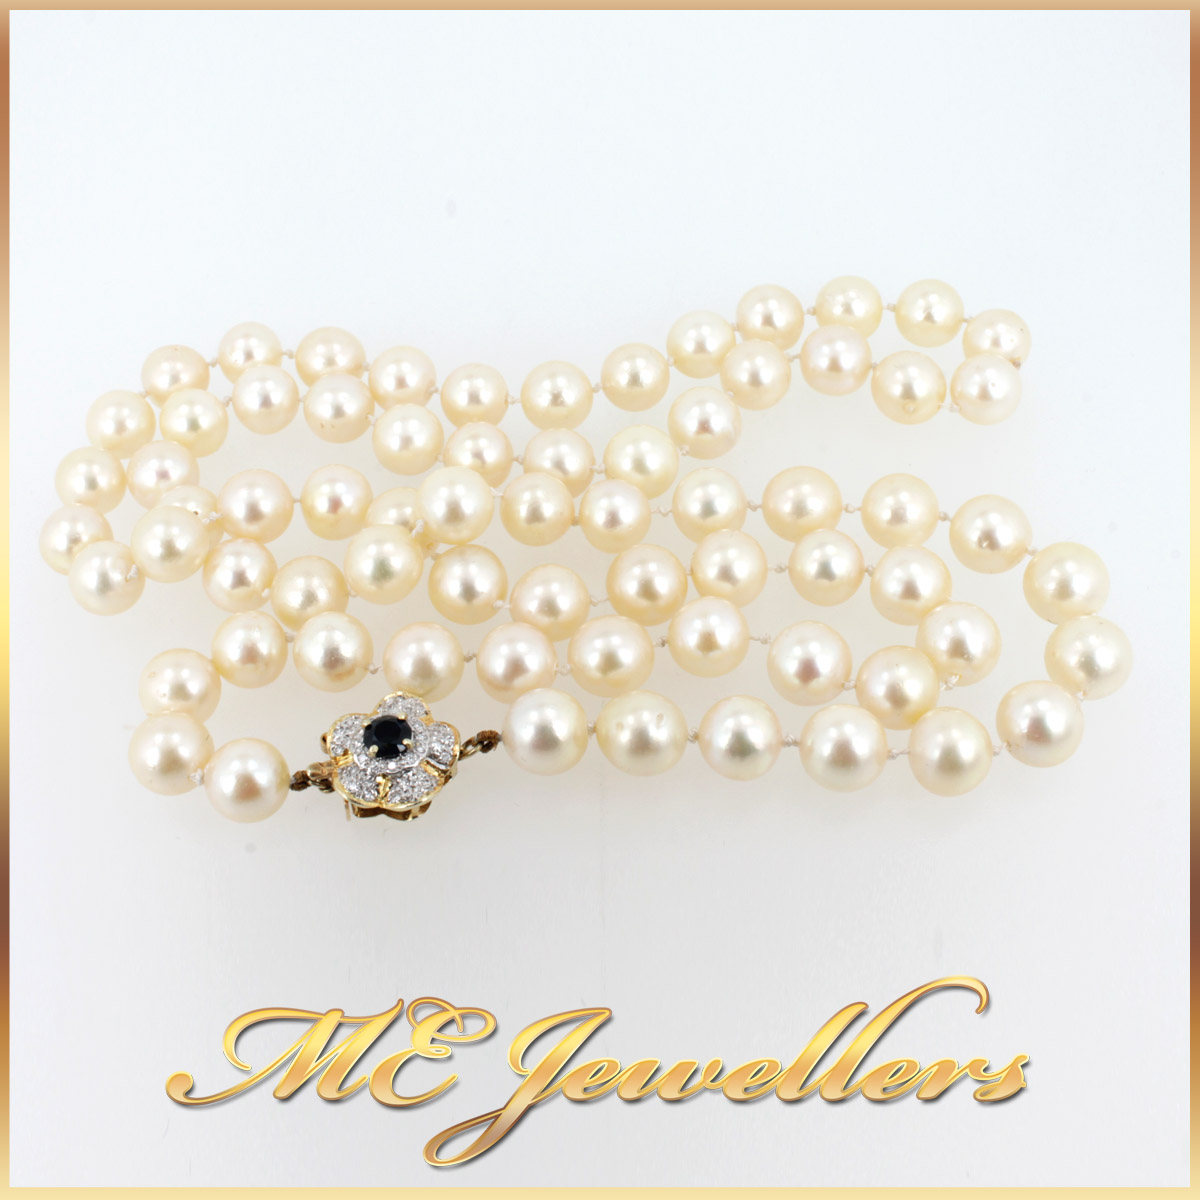 5908 Akoya Pearl Necklace With Sapphire and Diamond Clasp in 14K Yellow Gold overall